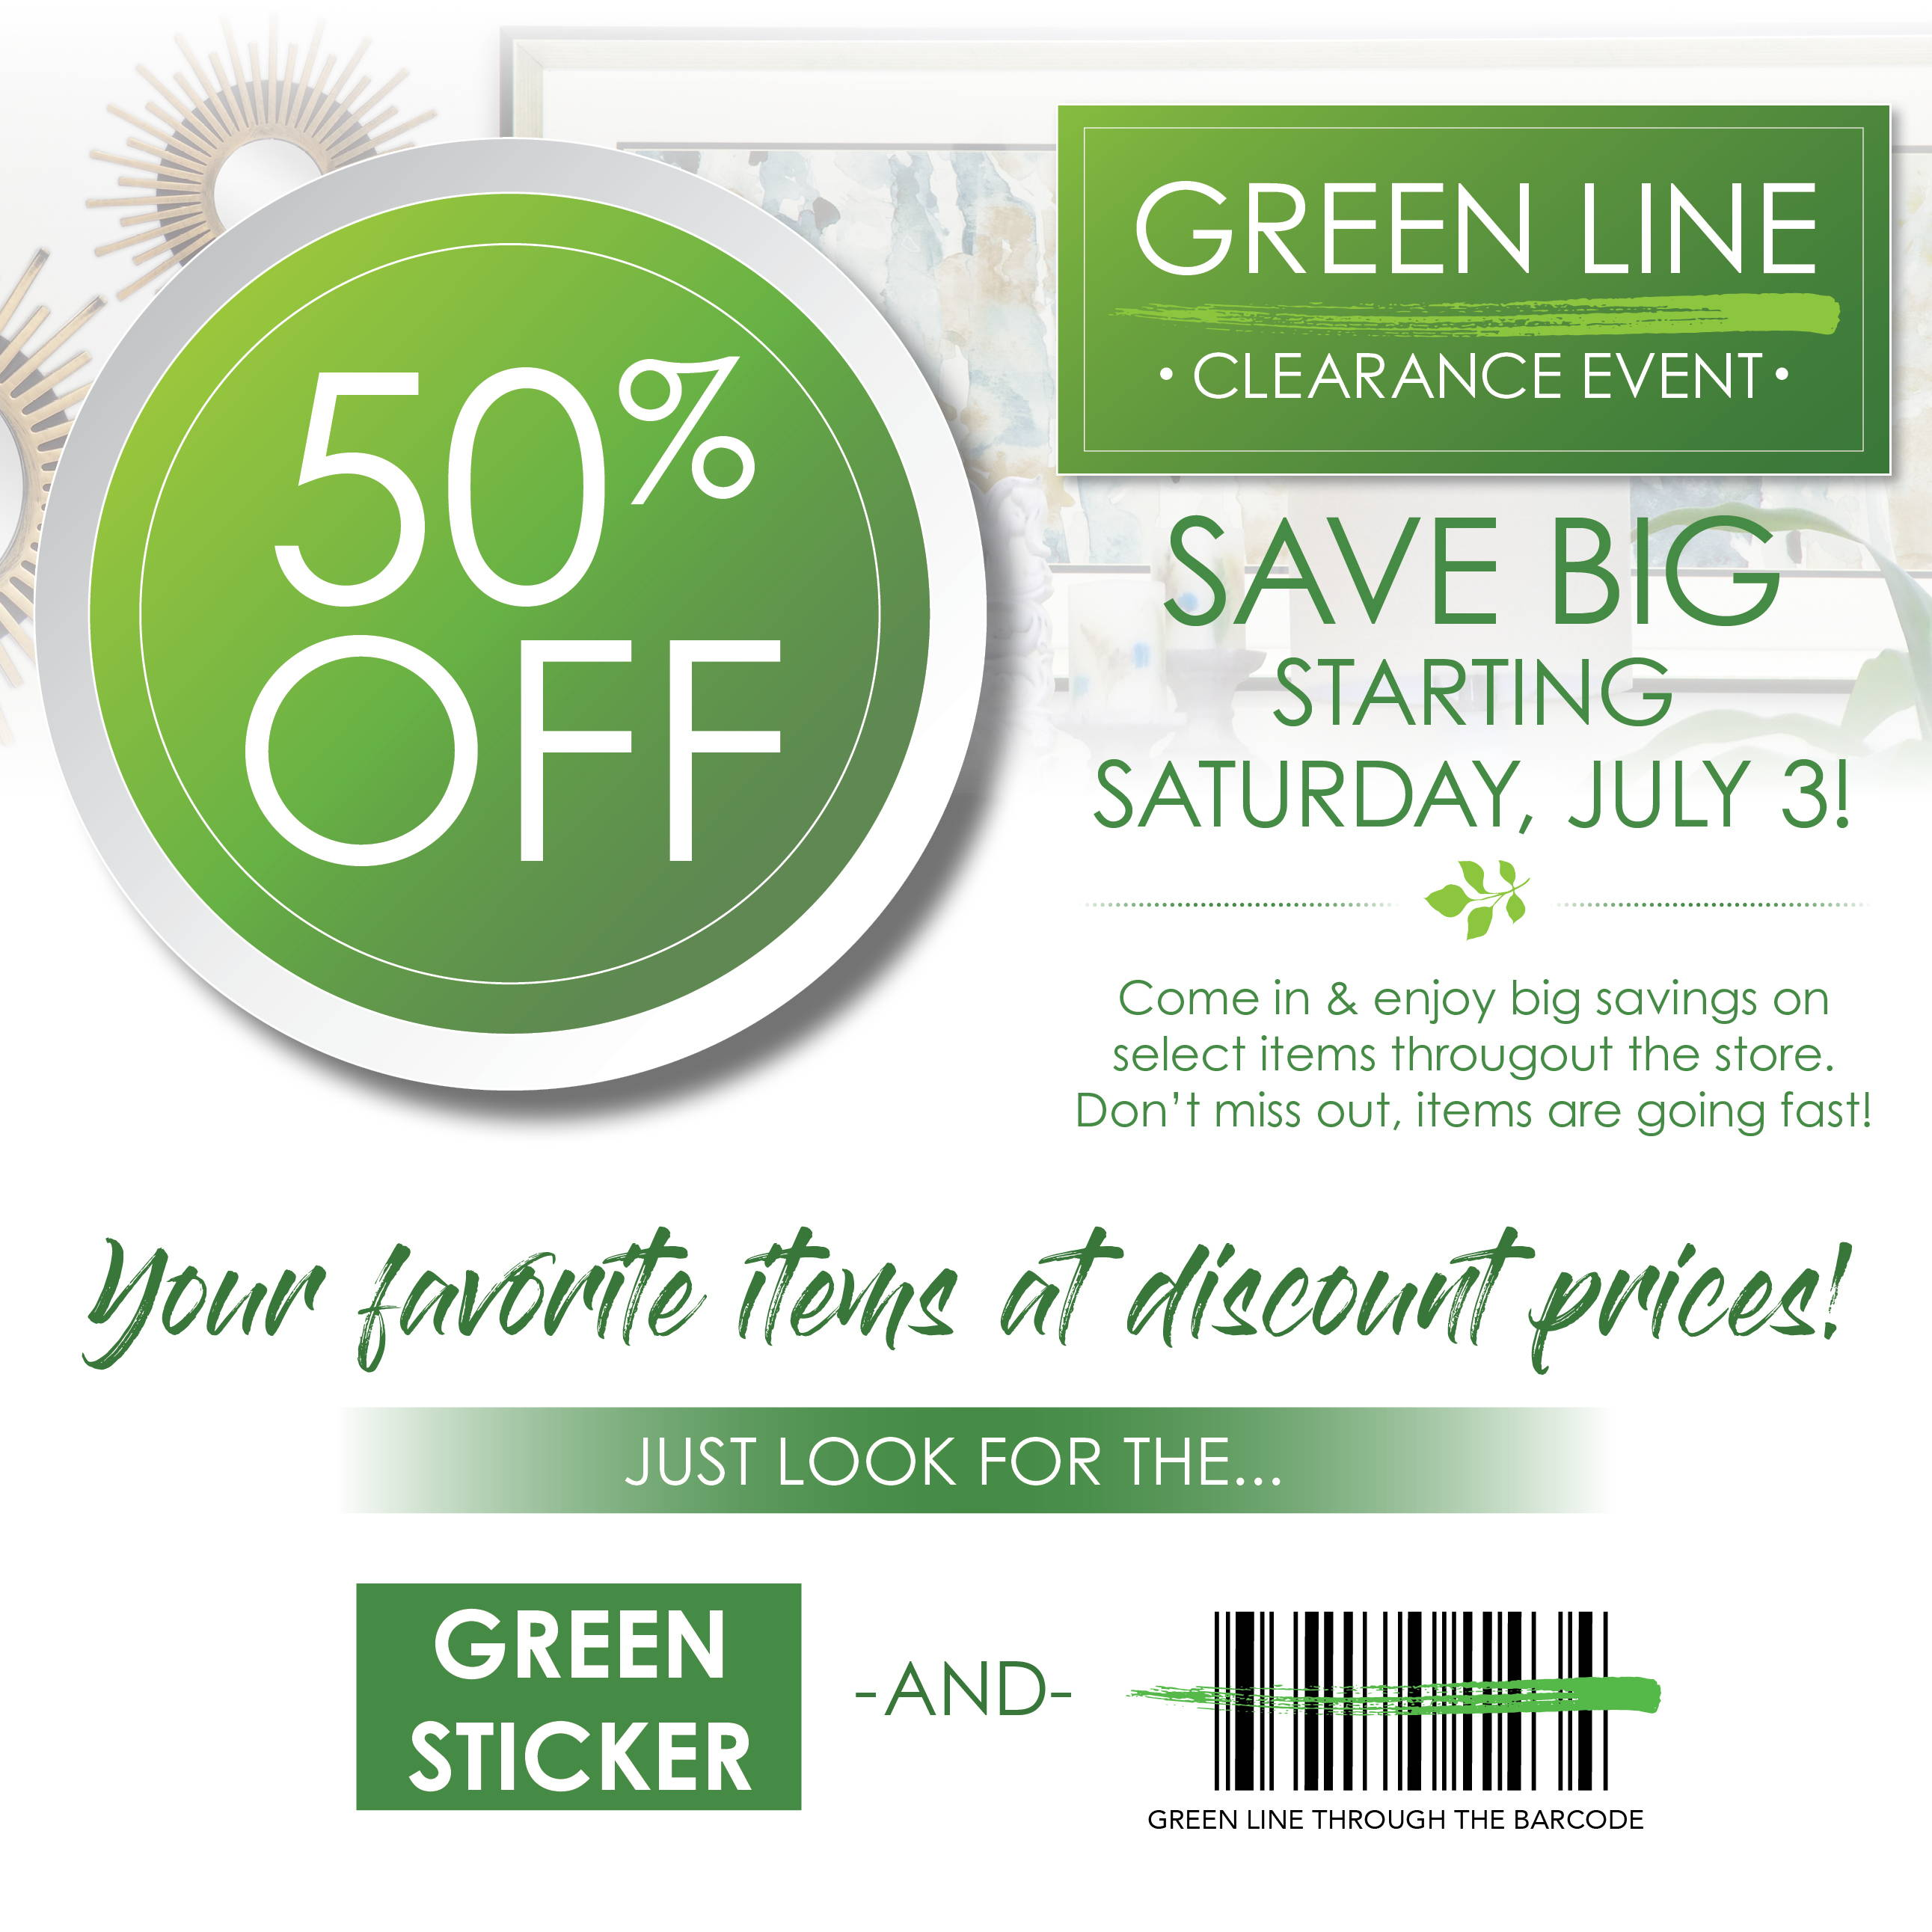 50% off green line clearance event! Come in & enjoy big savings on select items throughout the store. Don't miss out, items are going fast!